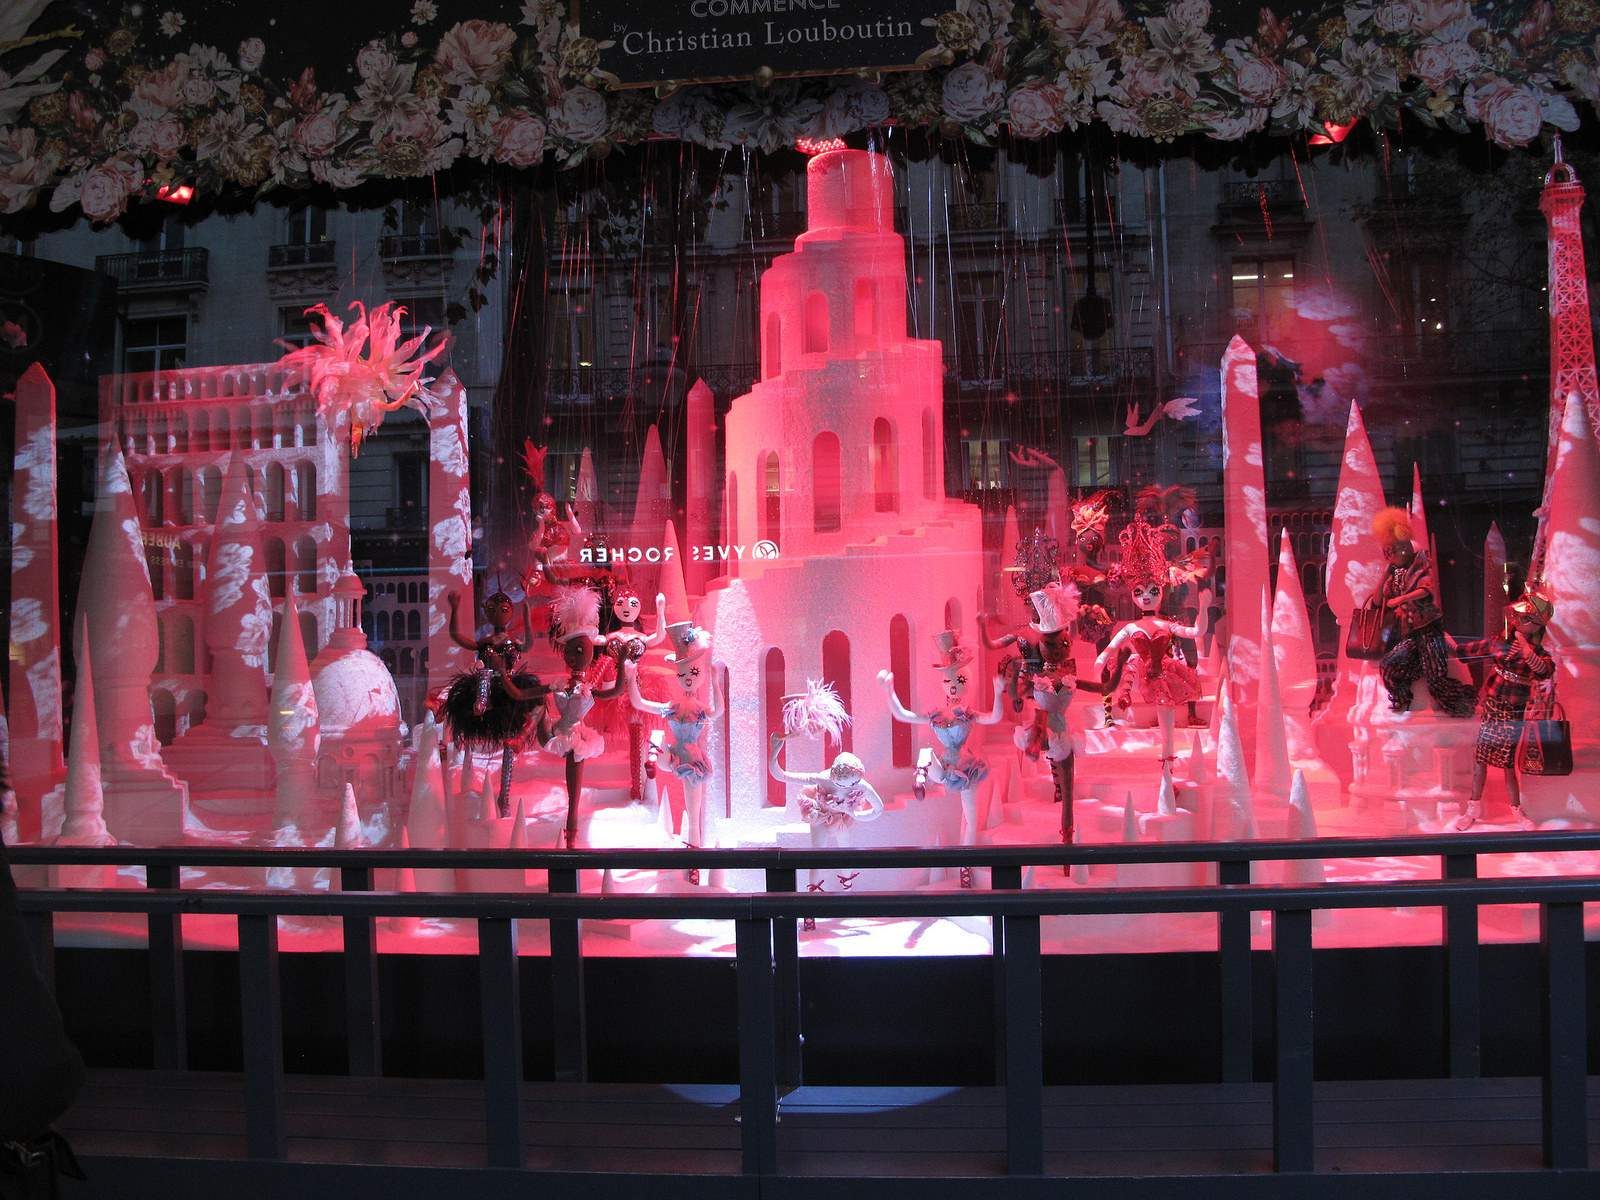 vitrines noel3 Christmas window displays in Paris